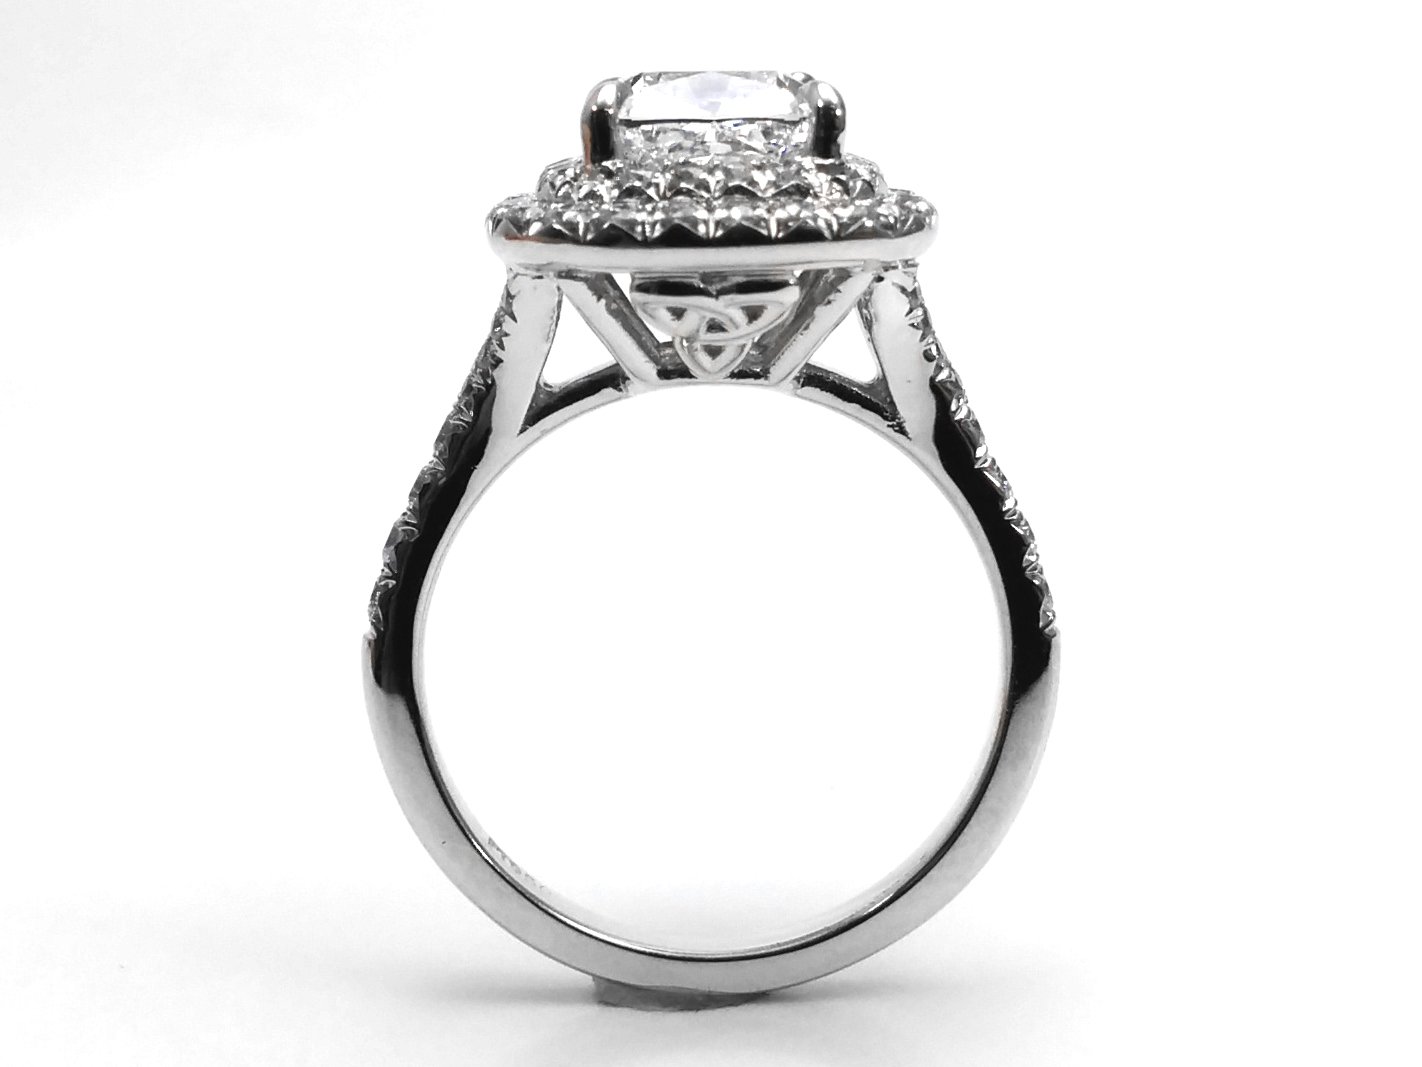 Cushion Diamond Double Halo Celtic Engagement Ring in 14K White Gold